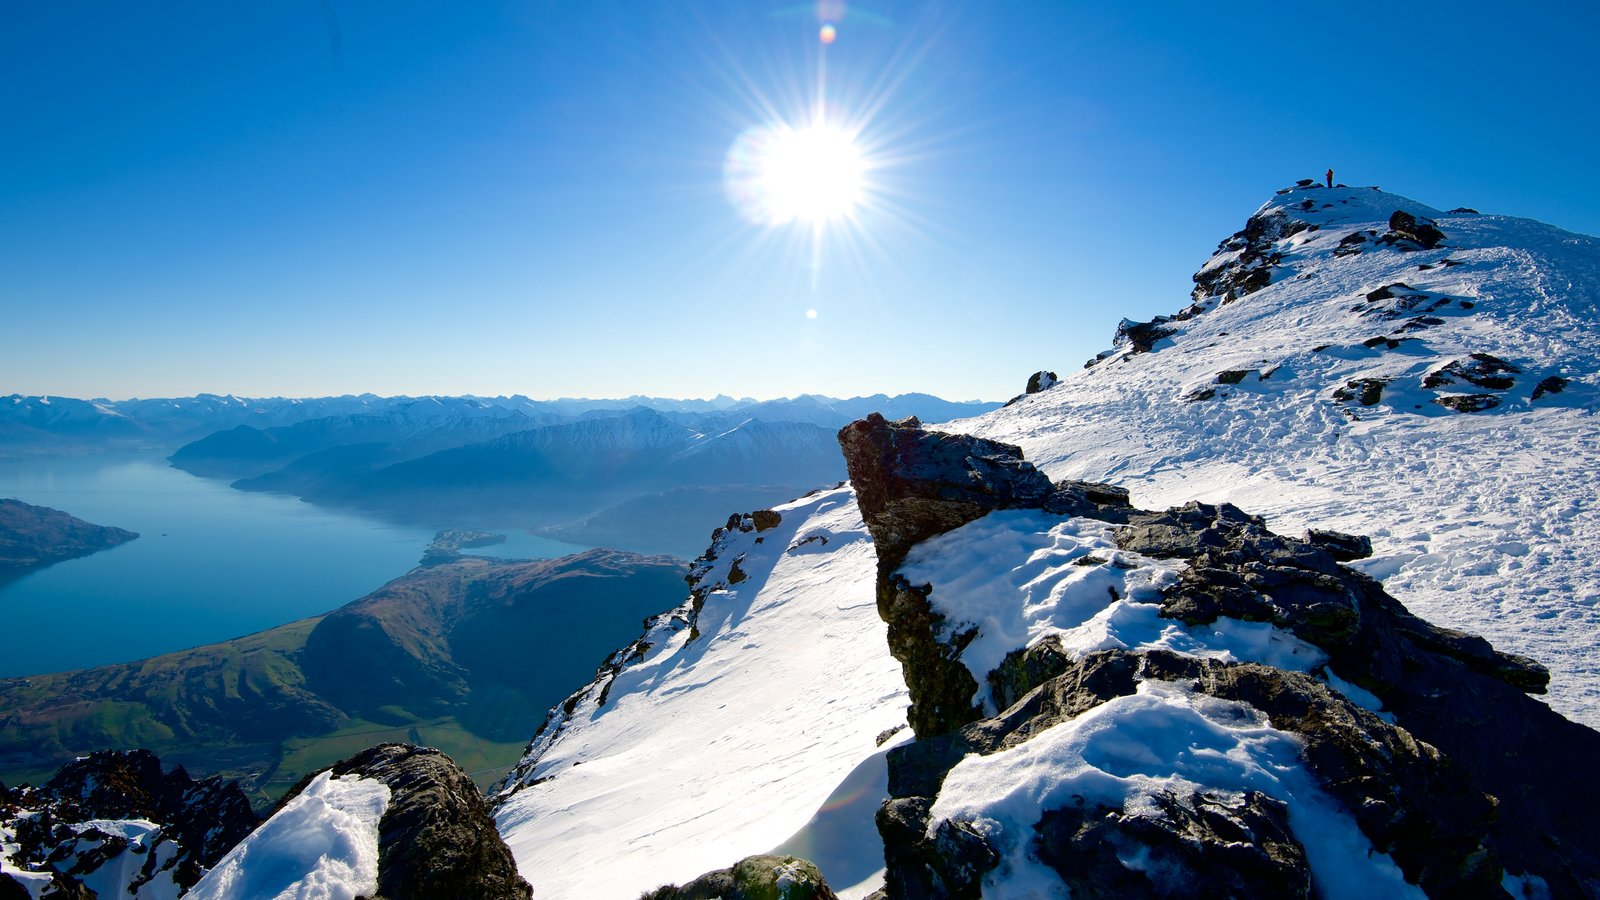 The Remarkables Ski Area featuring snow, landscape views and mountains